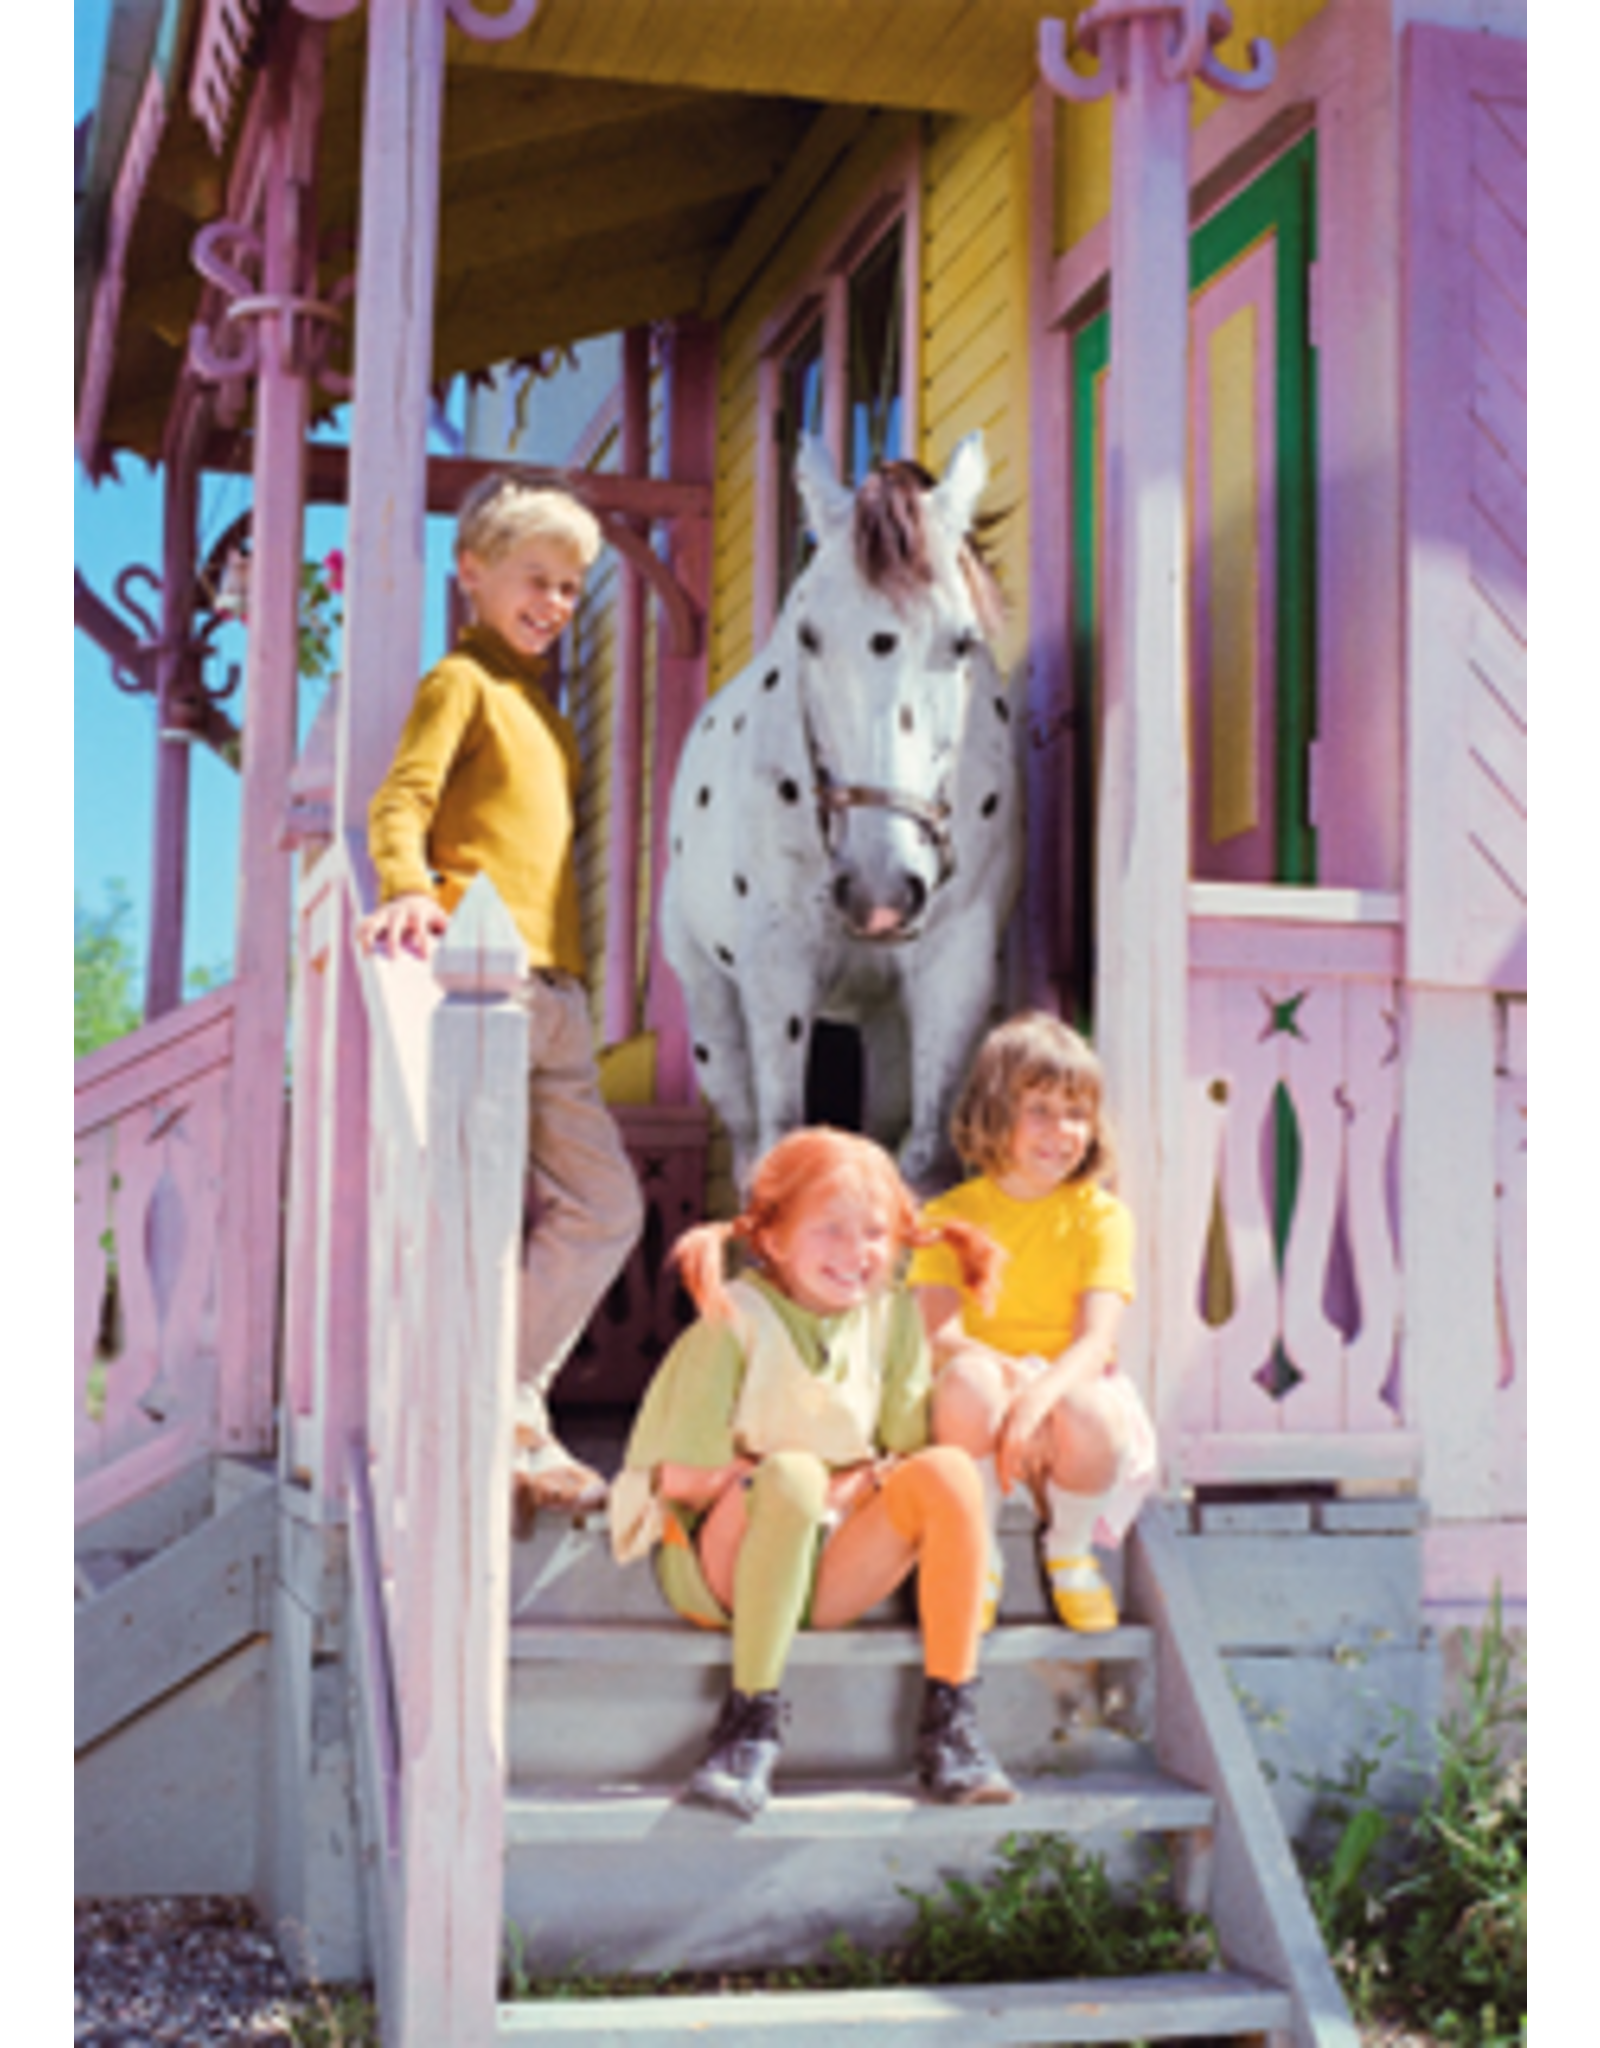 Pippi Langkous Pippi Longstocking card - on the stairs